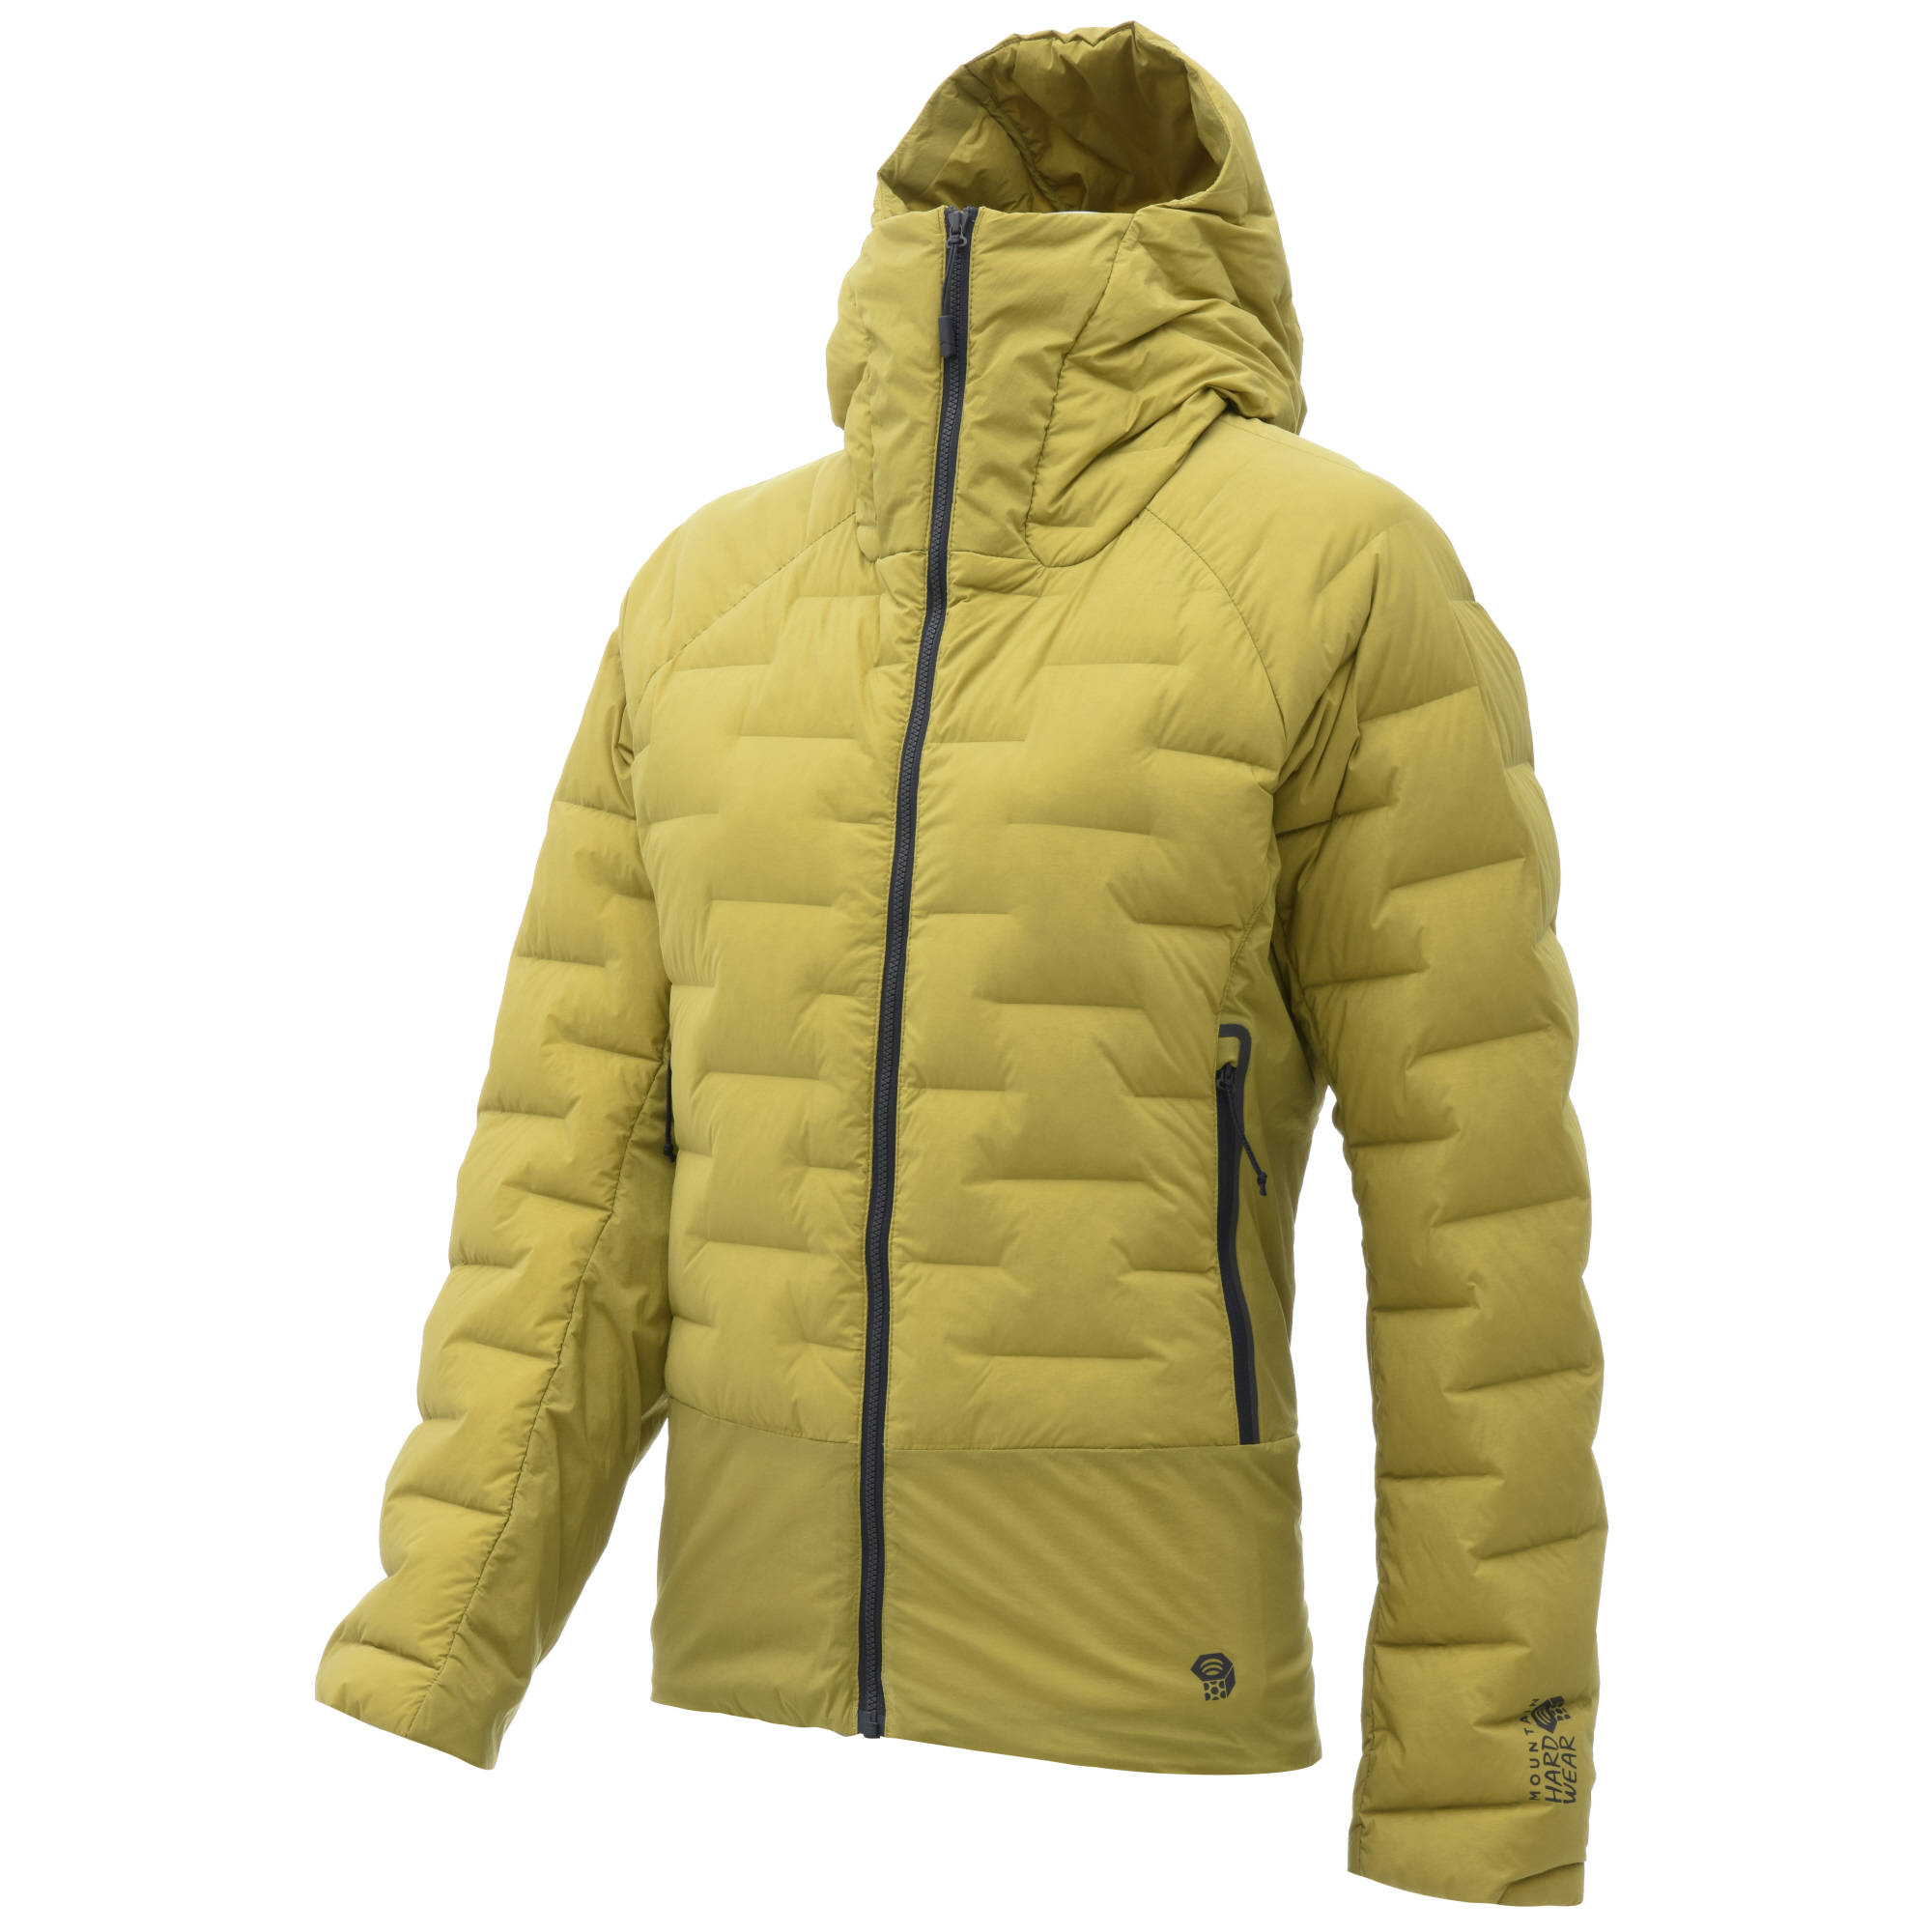 Mountain Hardwear Women's Super/DS™ Climb Jacket | Jackets